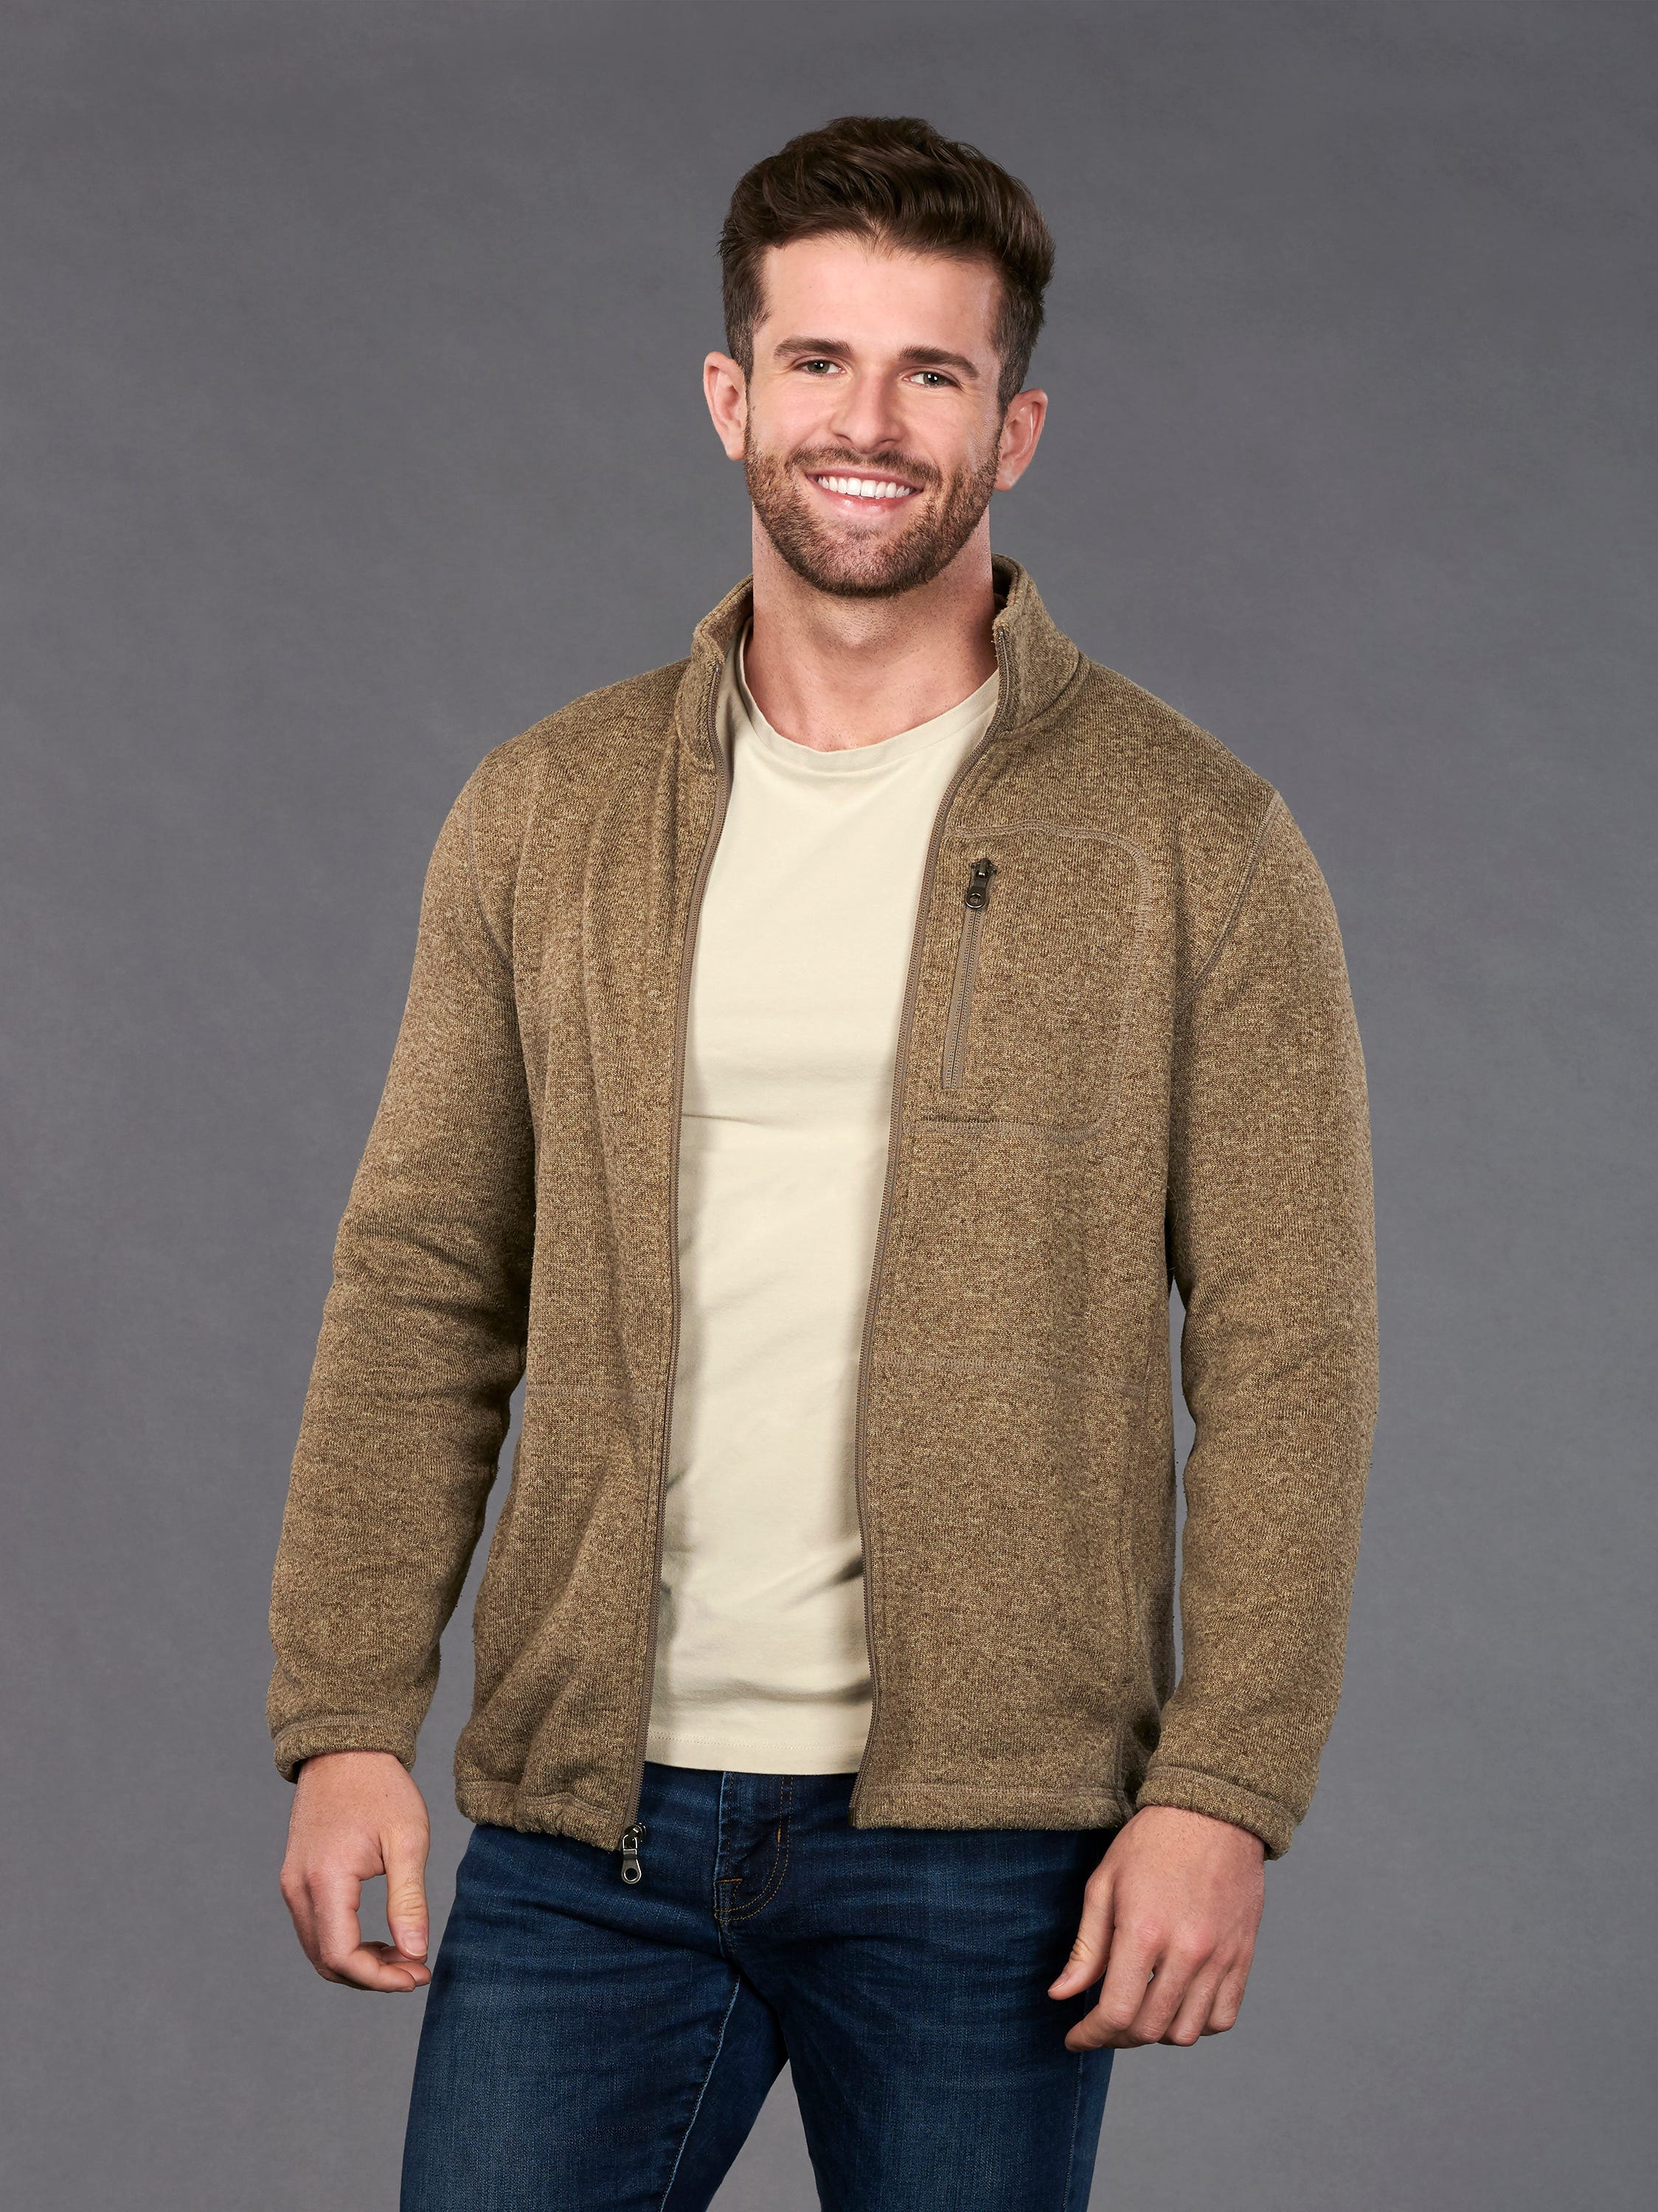 'Bachelorette' star Jed Wyatt was in a serious relationship during the show, his ex claims